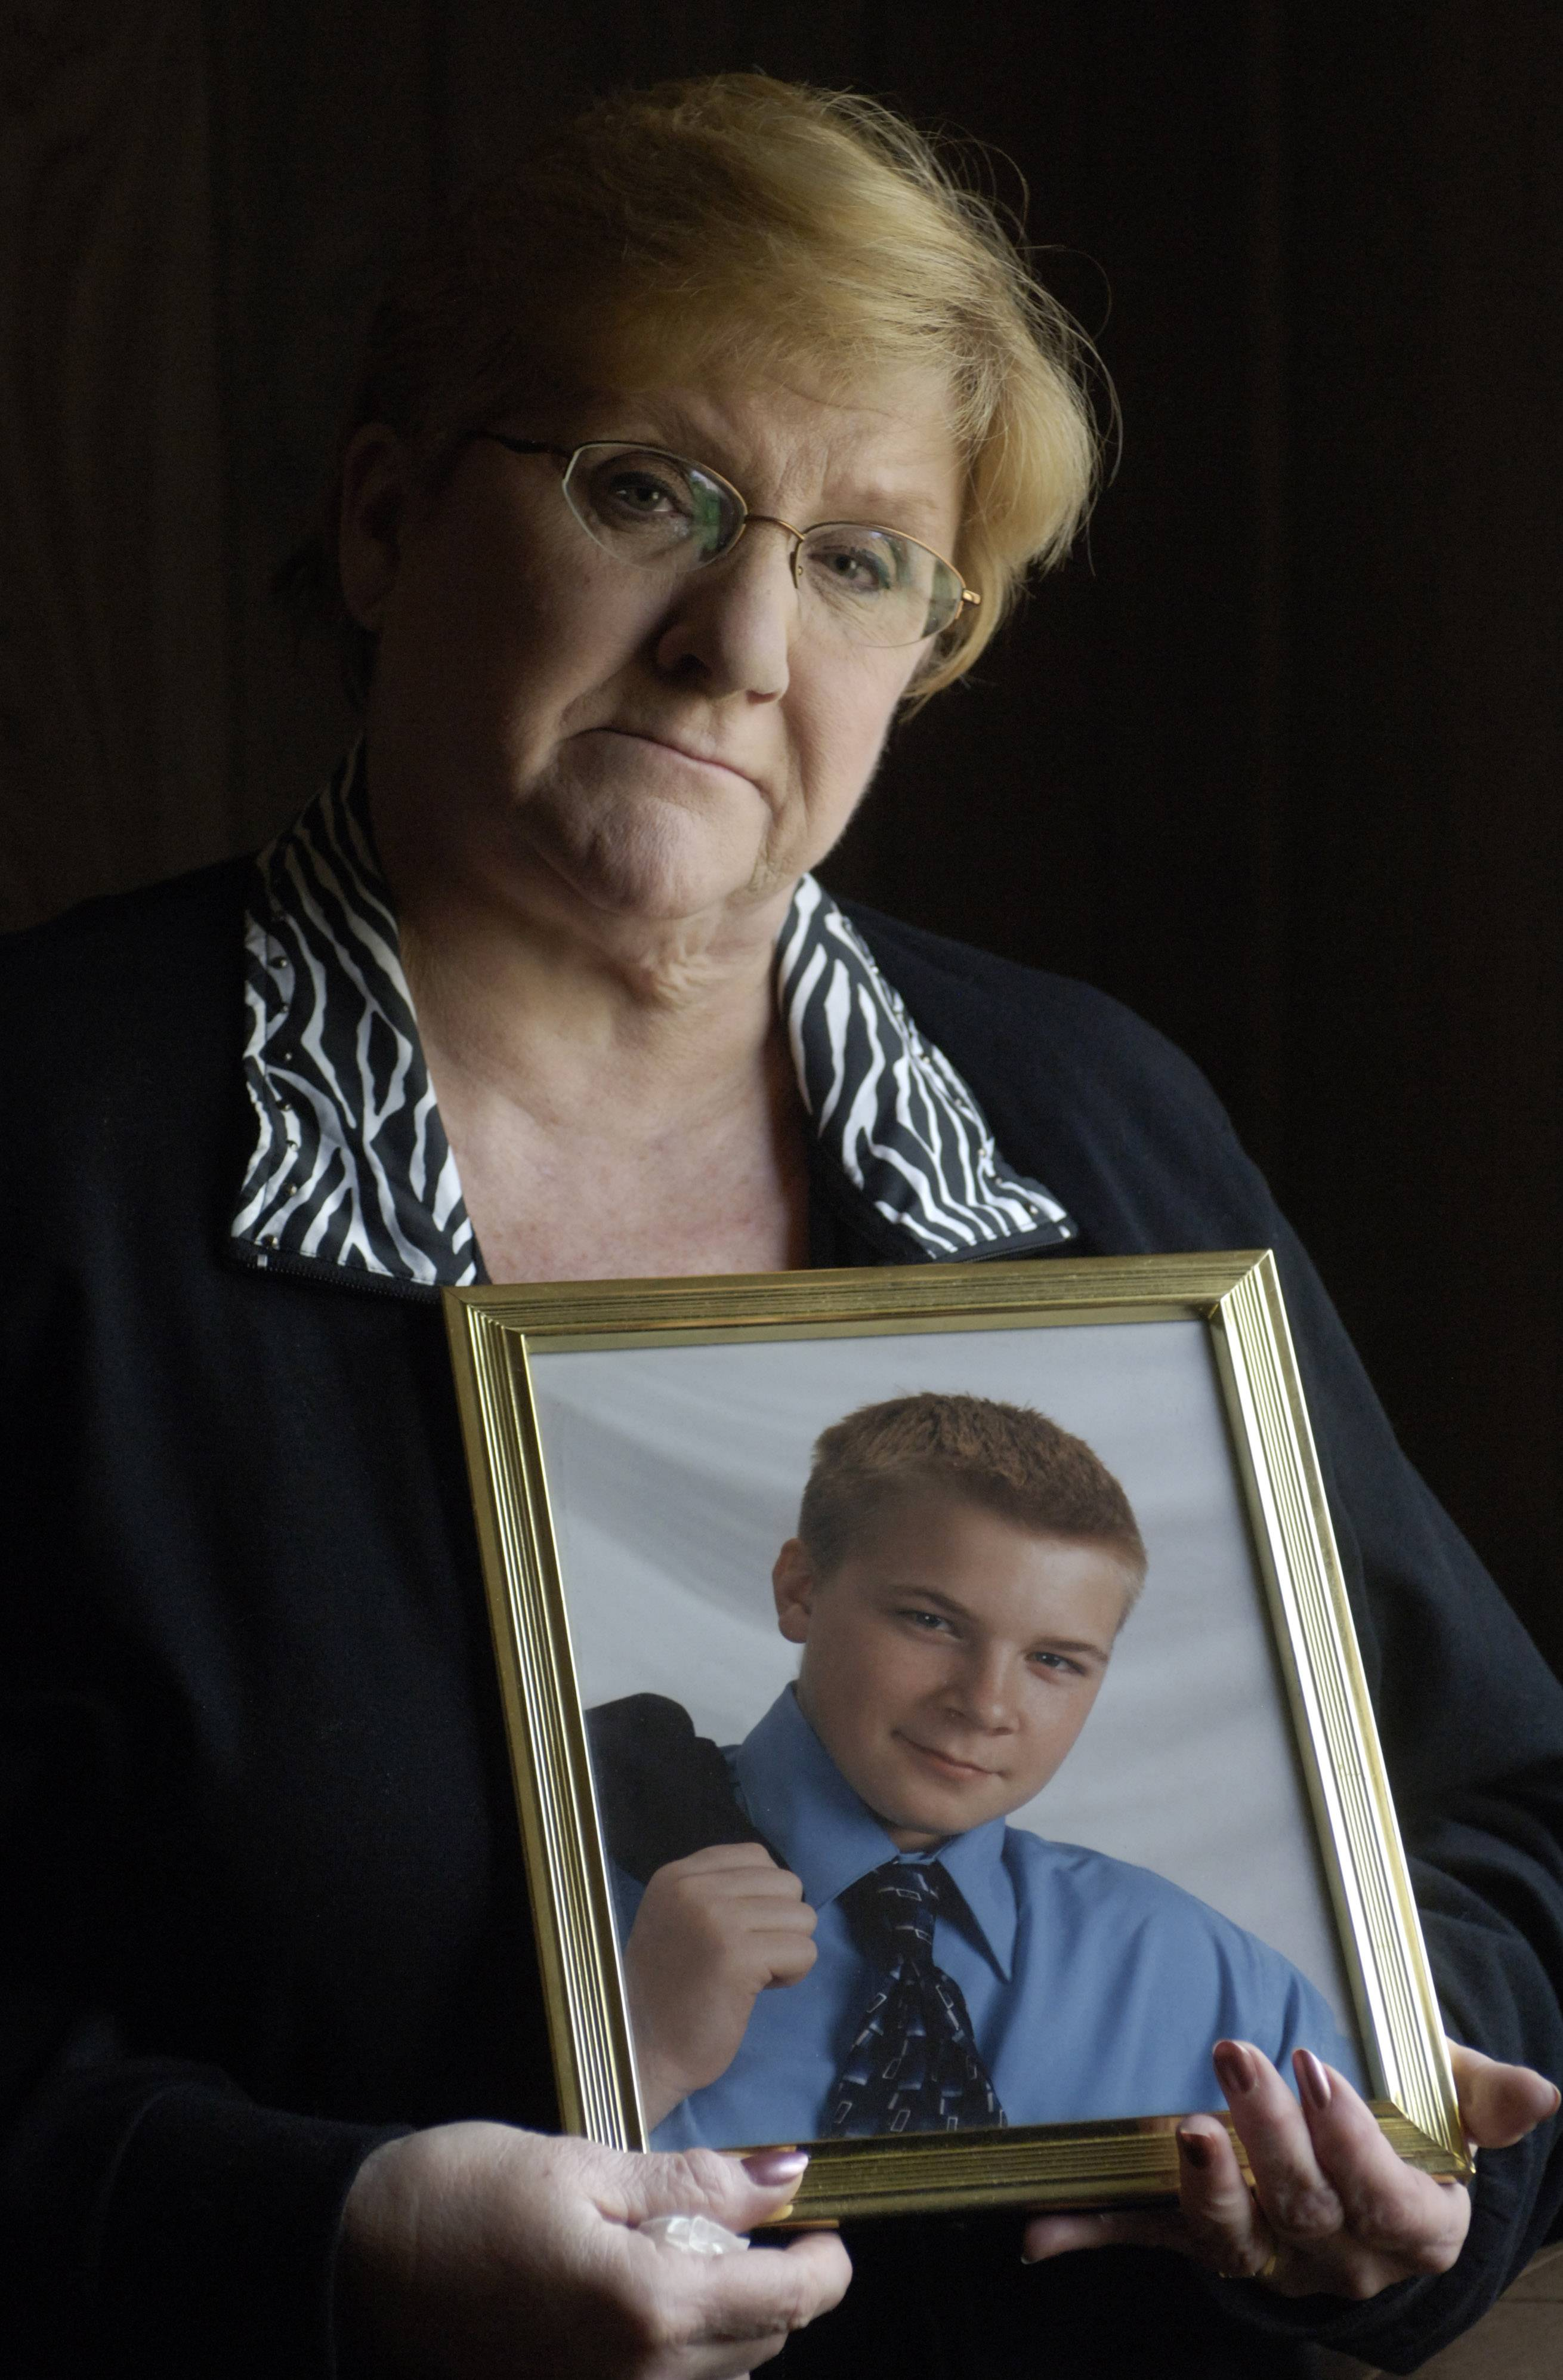 Nancy Koschman holds a photo of her son, David, who died in 2004 after a fight outside a Chicago bar.